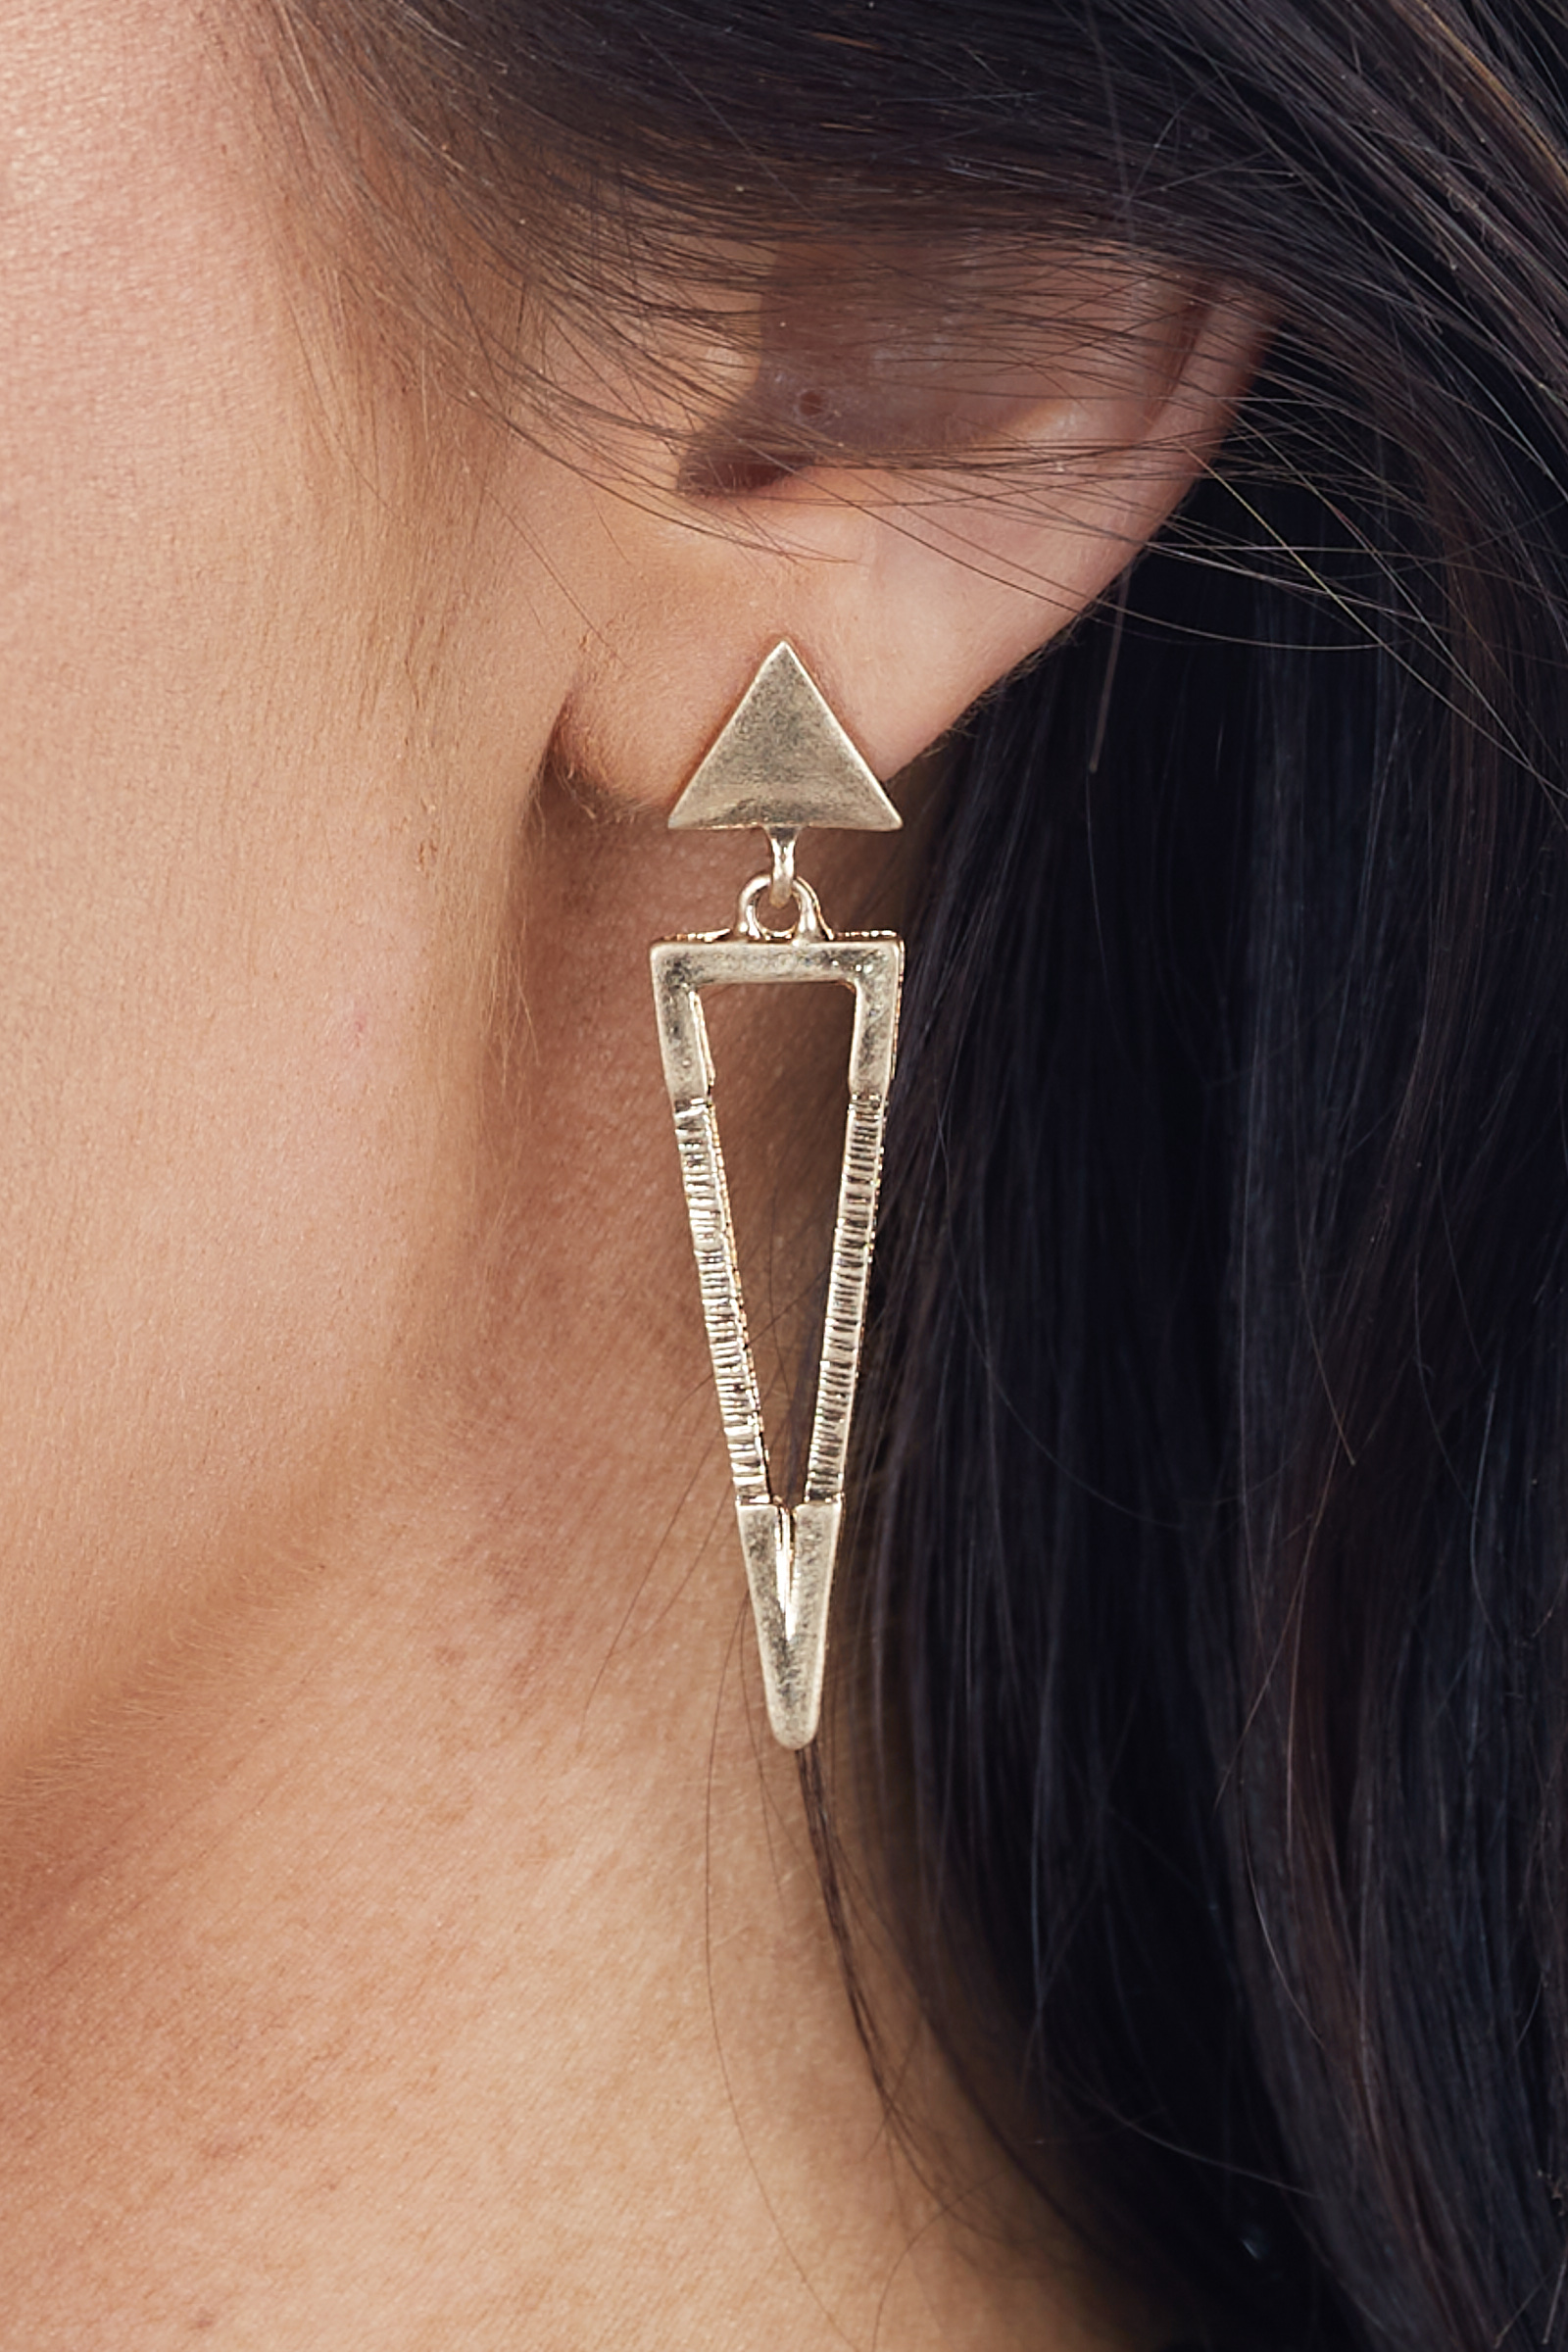 Gold Geometric Triangle Earrings with Textured Details